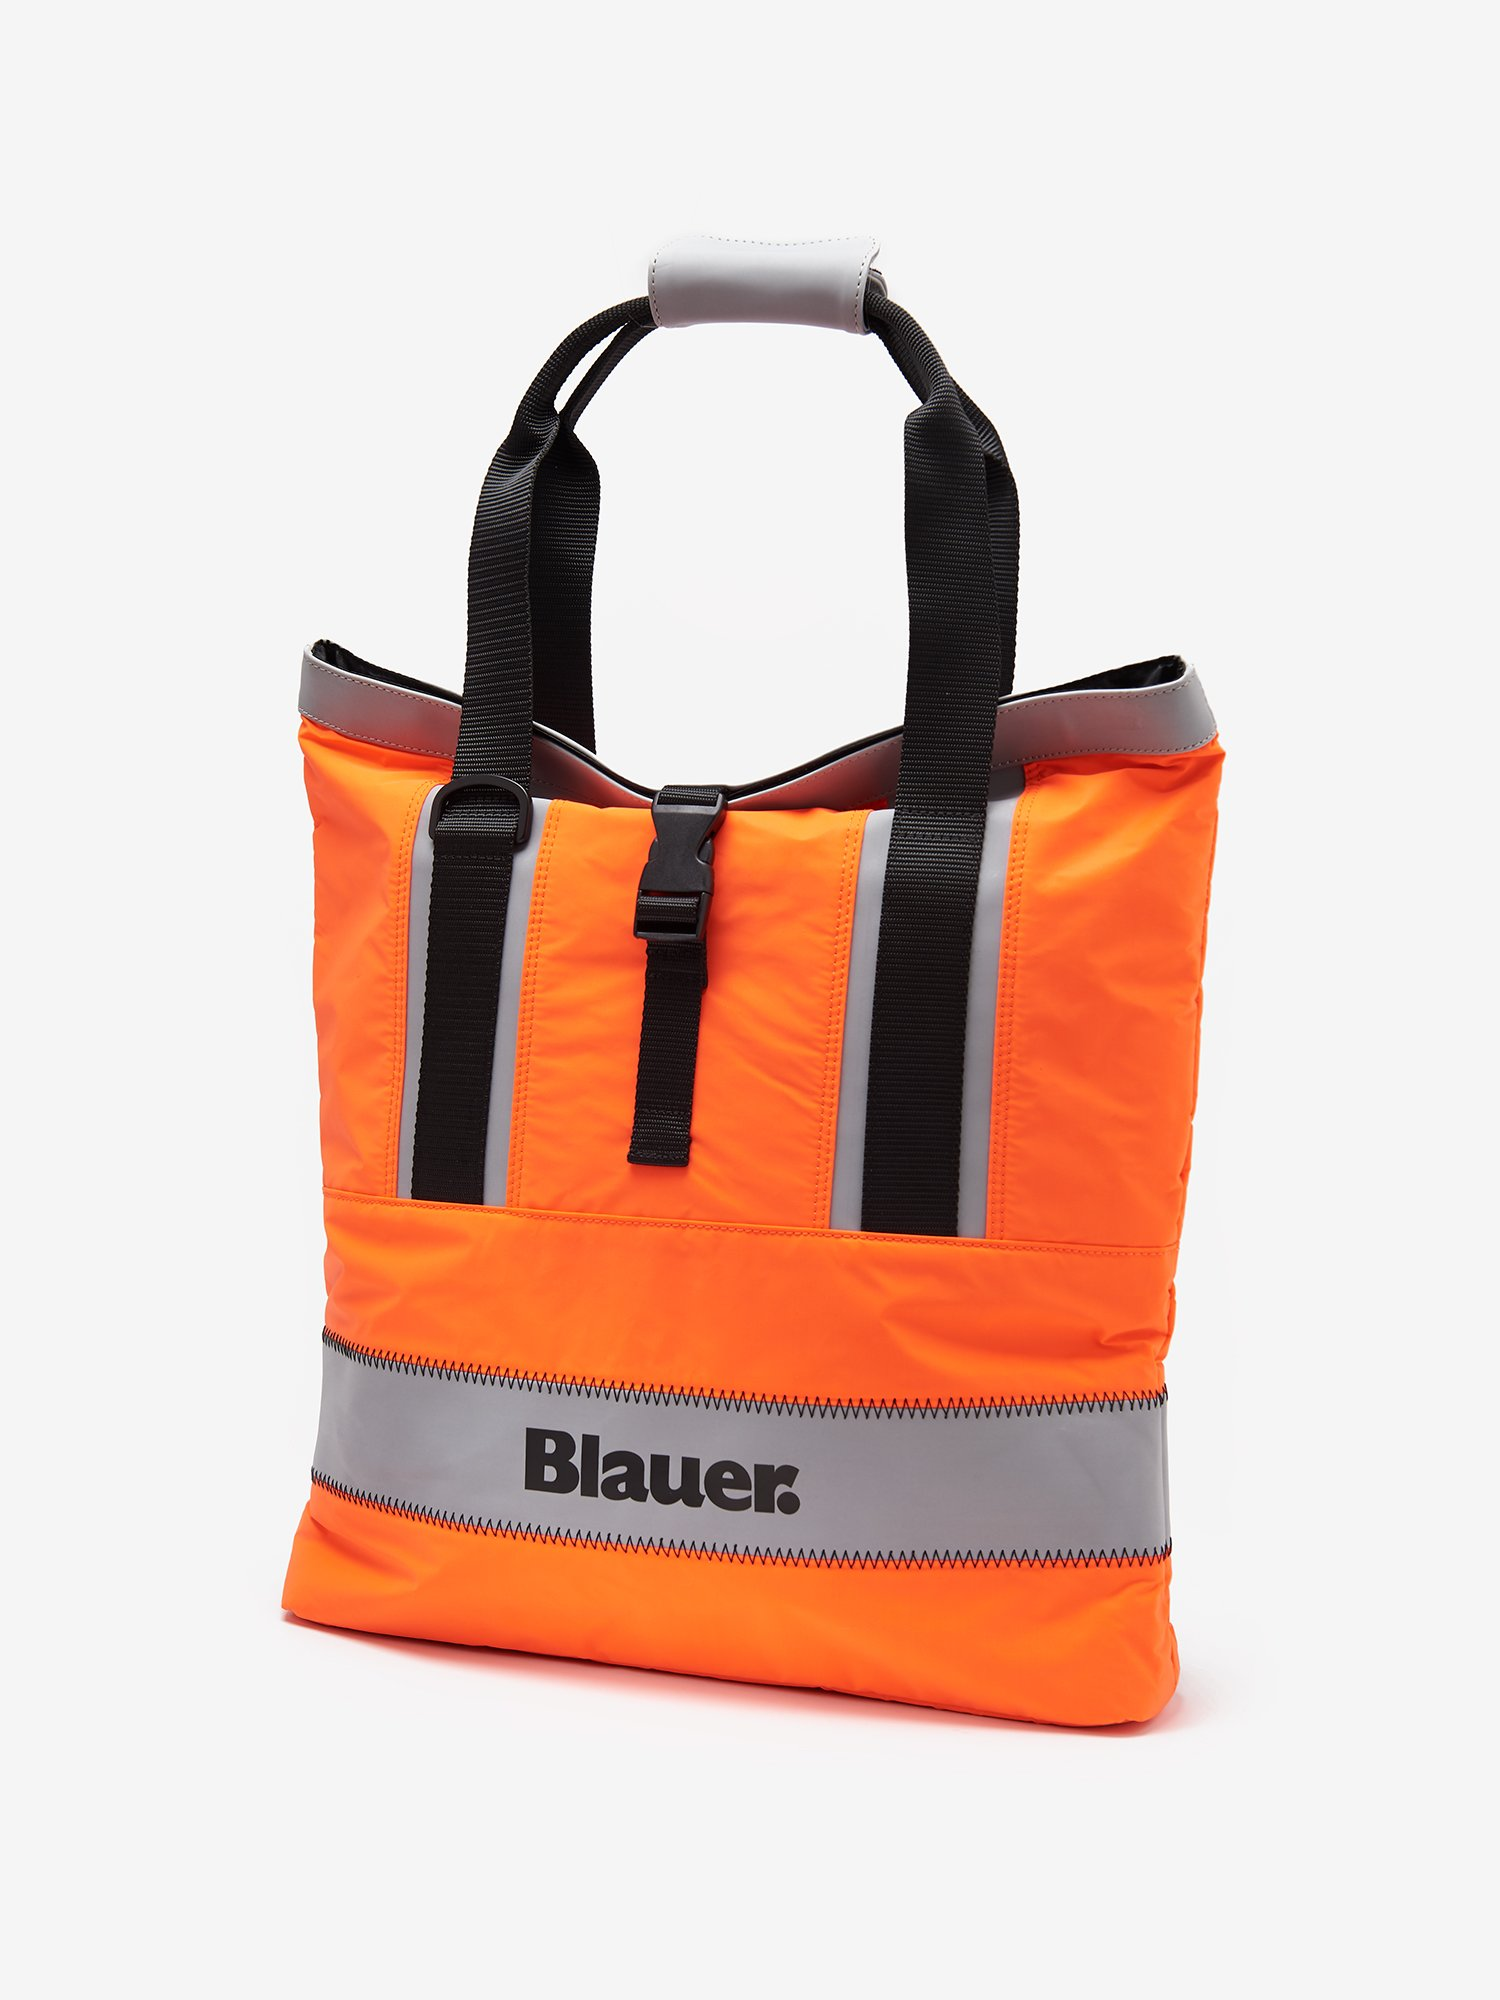 HIGH VISIBILITY HAND BAG - Blauer